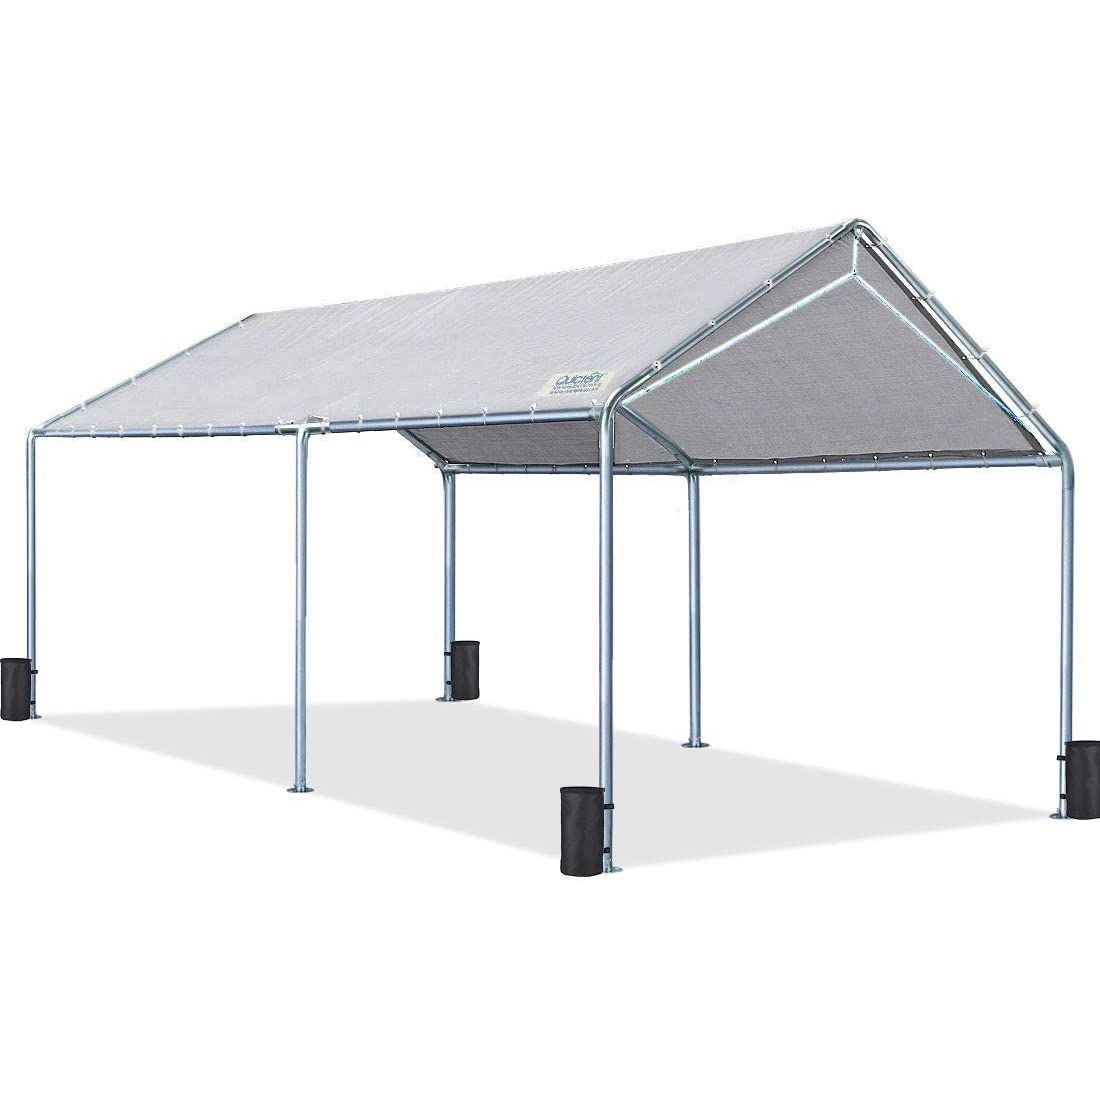 Here Are The Highest Rated Car Canopies To Keep Your Vehicle Safe